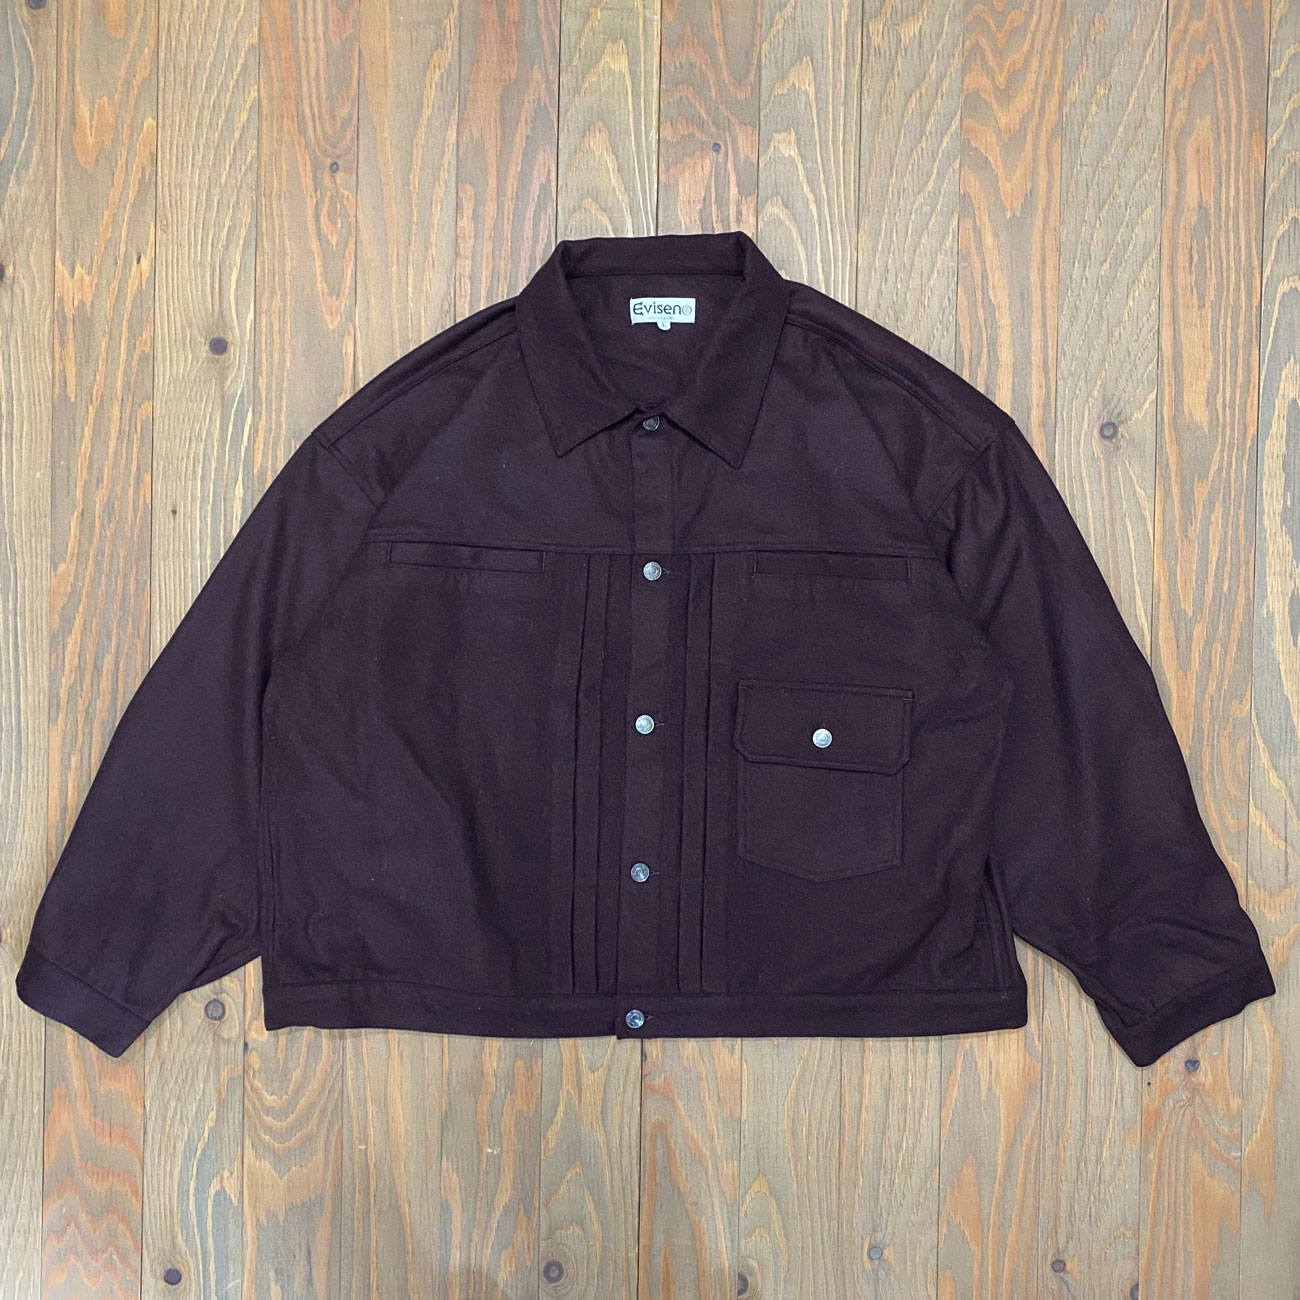 EVISEN 2ND HAND SMOKE JKT